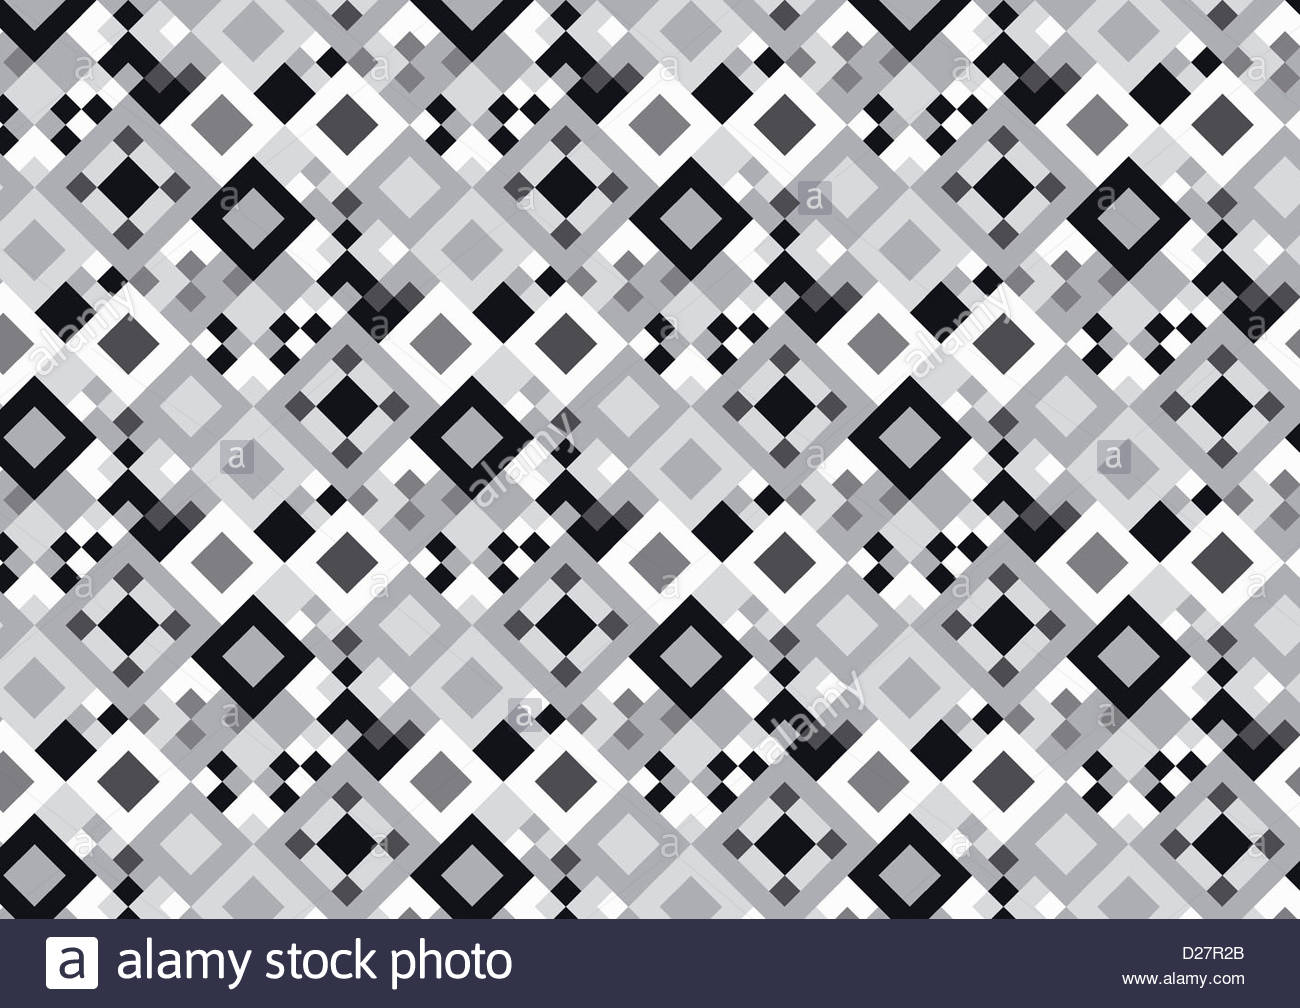 Abstract black and white pattern - Stock Image